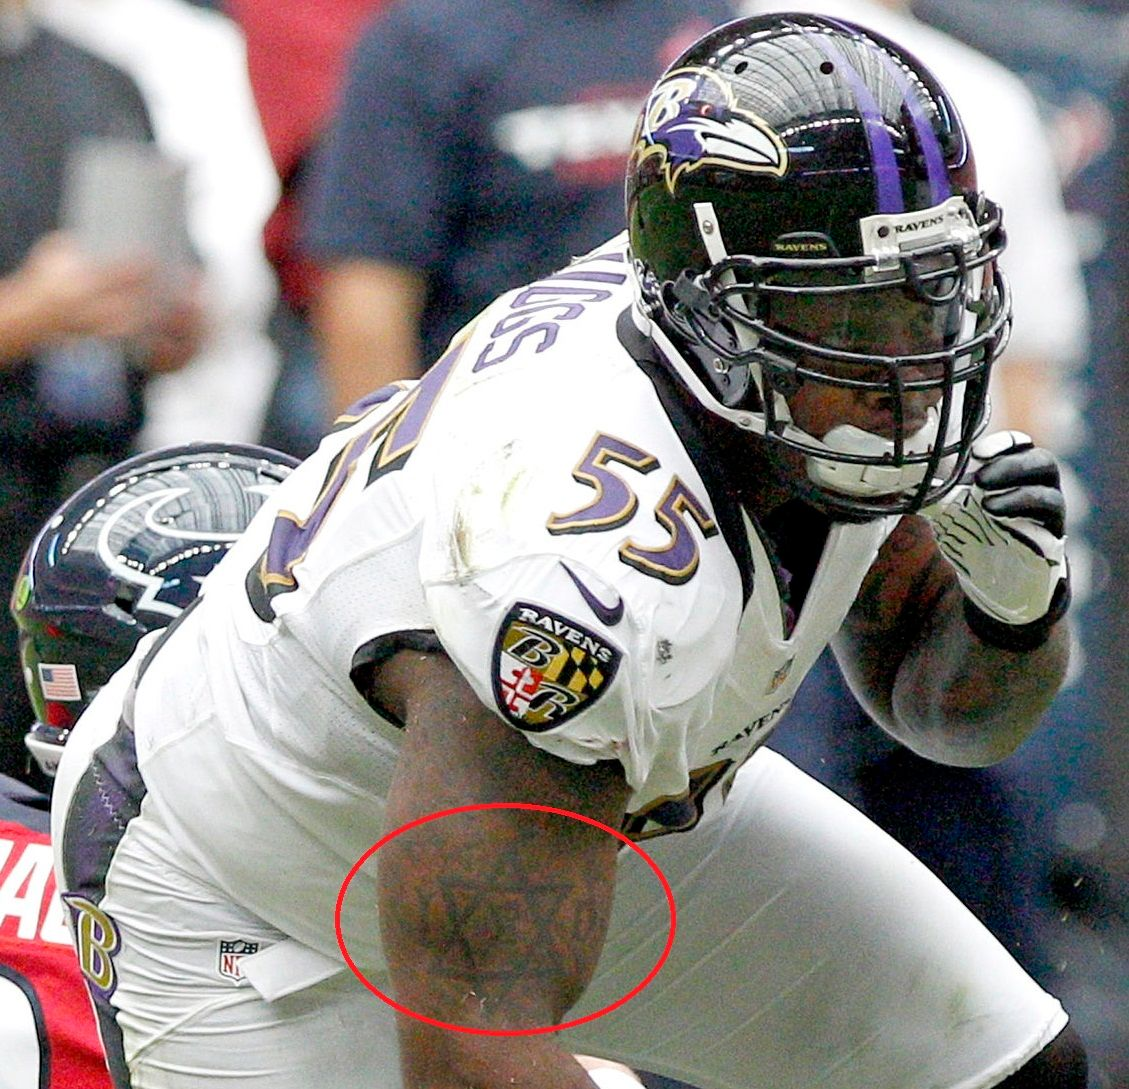 Terrell Suggs Right Arm Jewish Star Tattoo 02